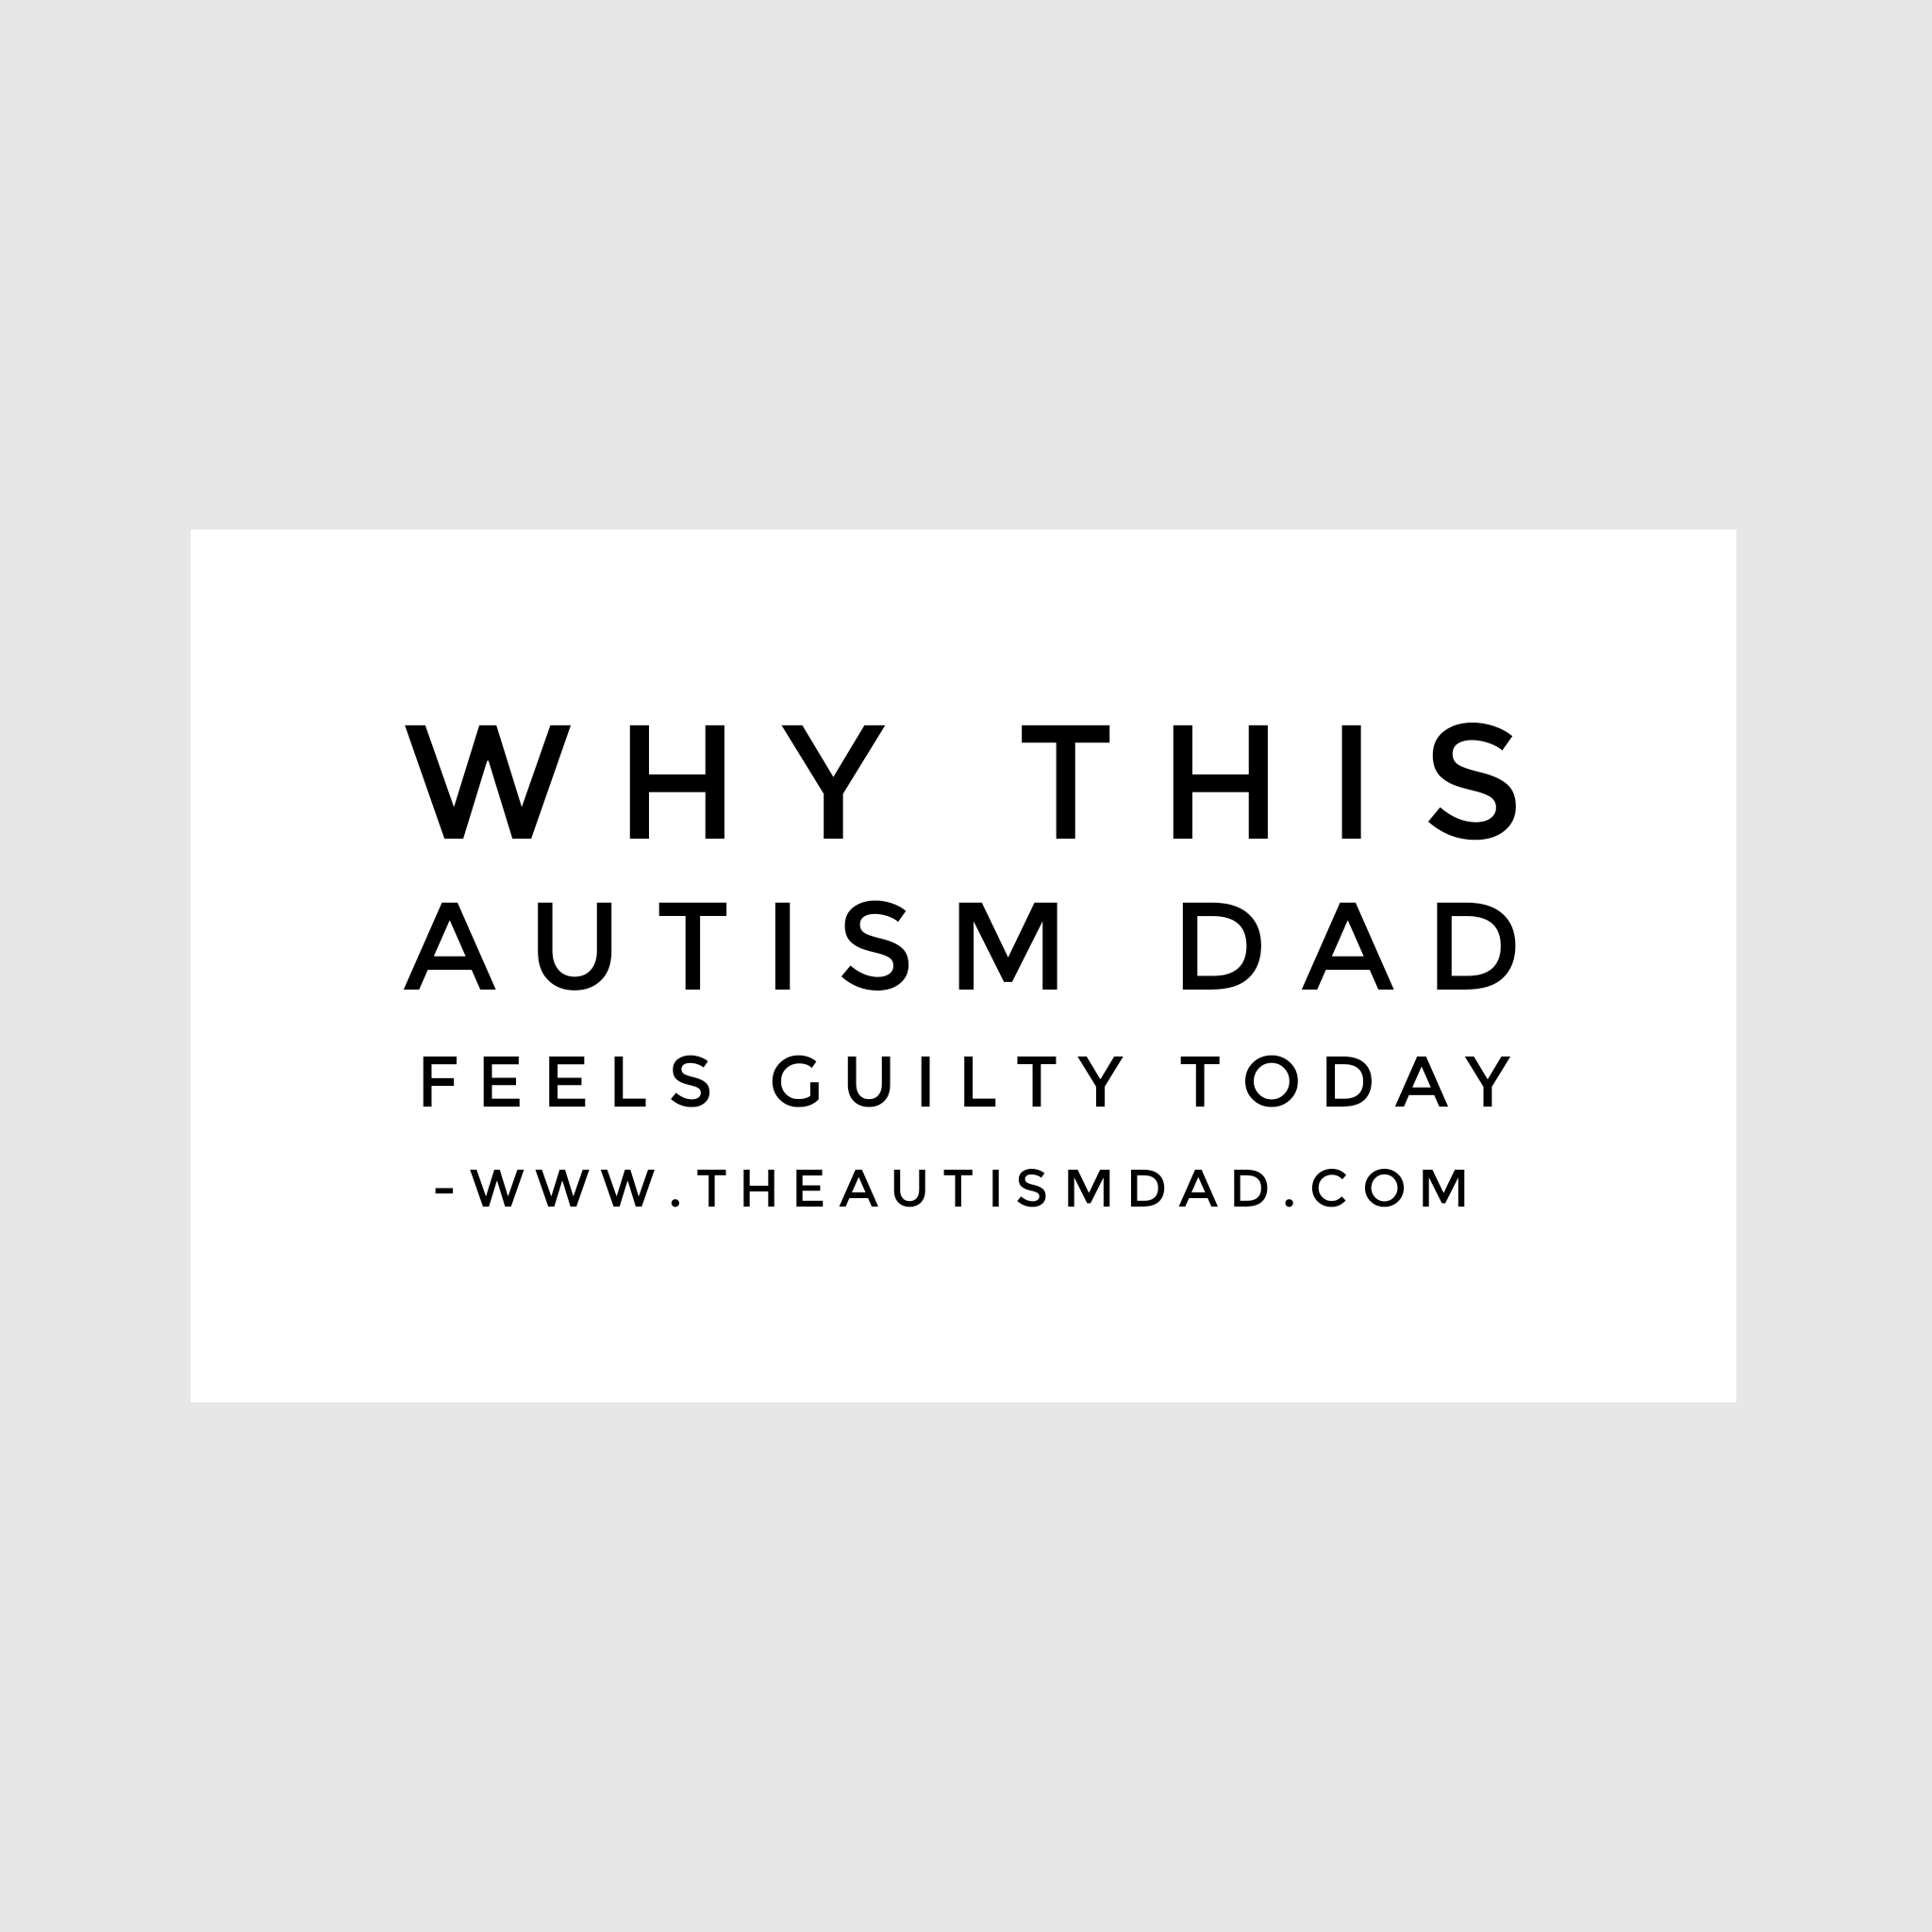 Why this #Autism Dad feels guilty today